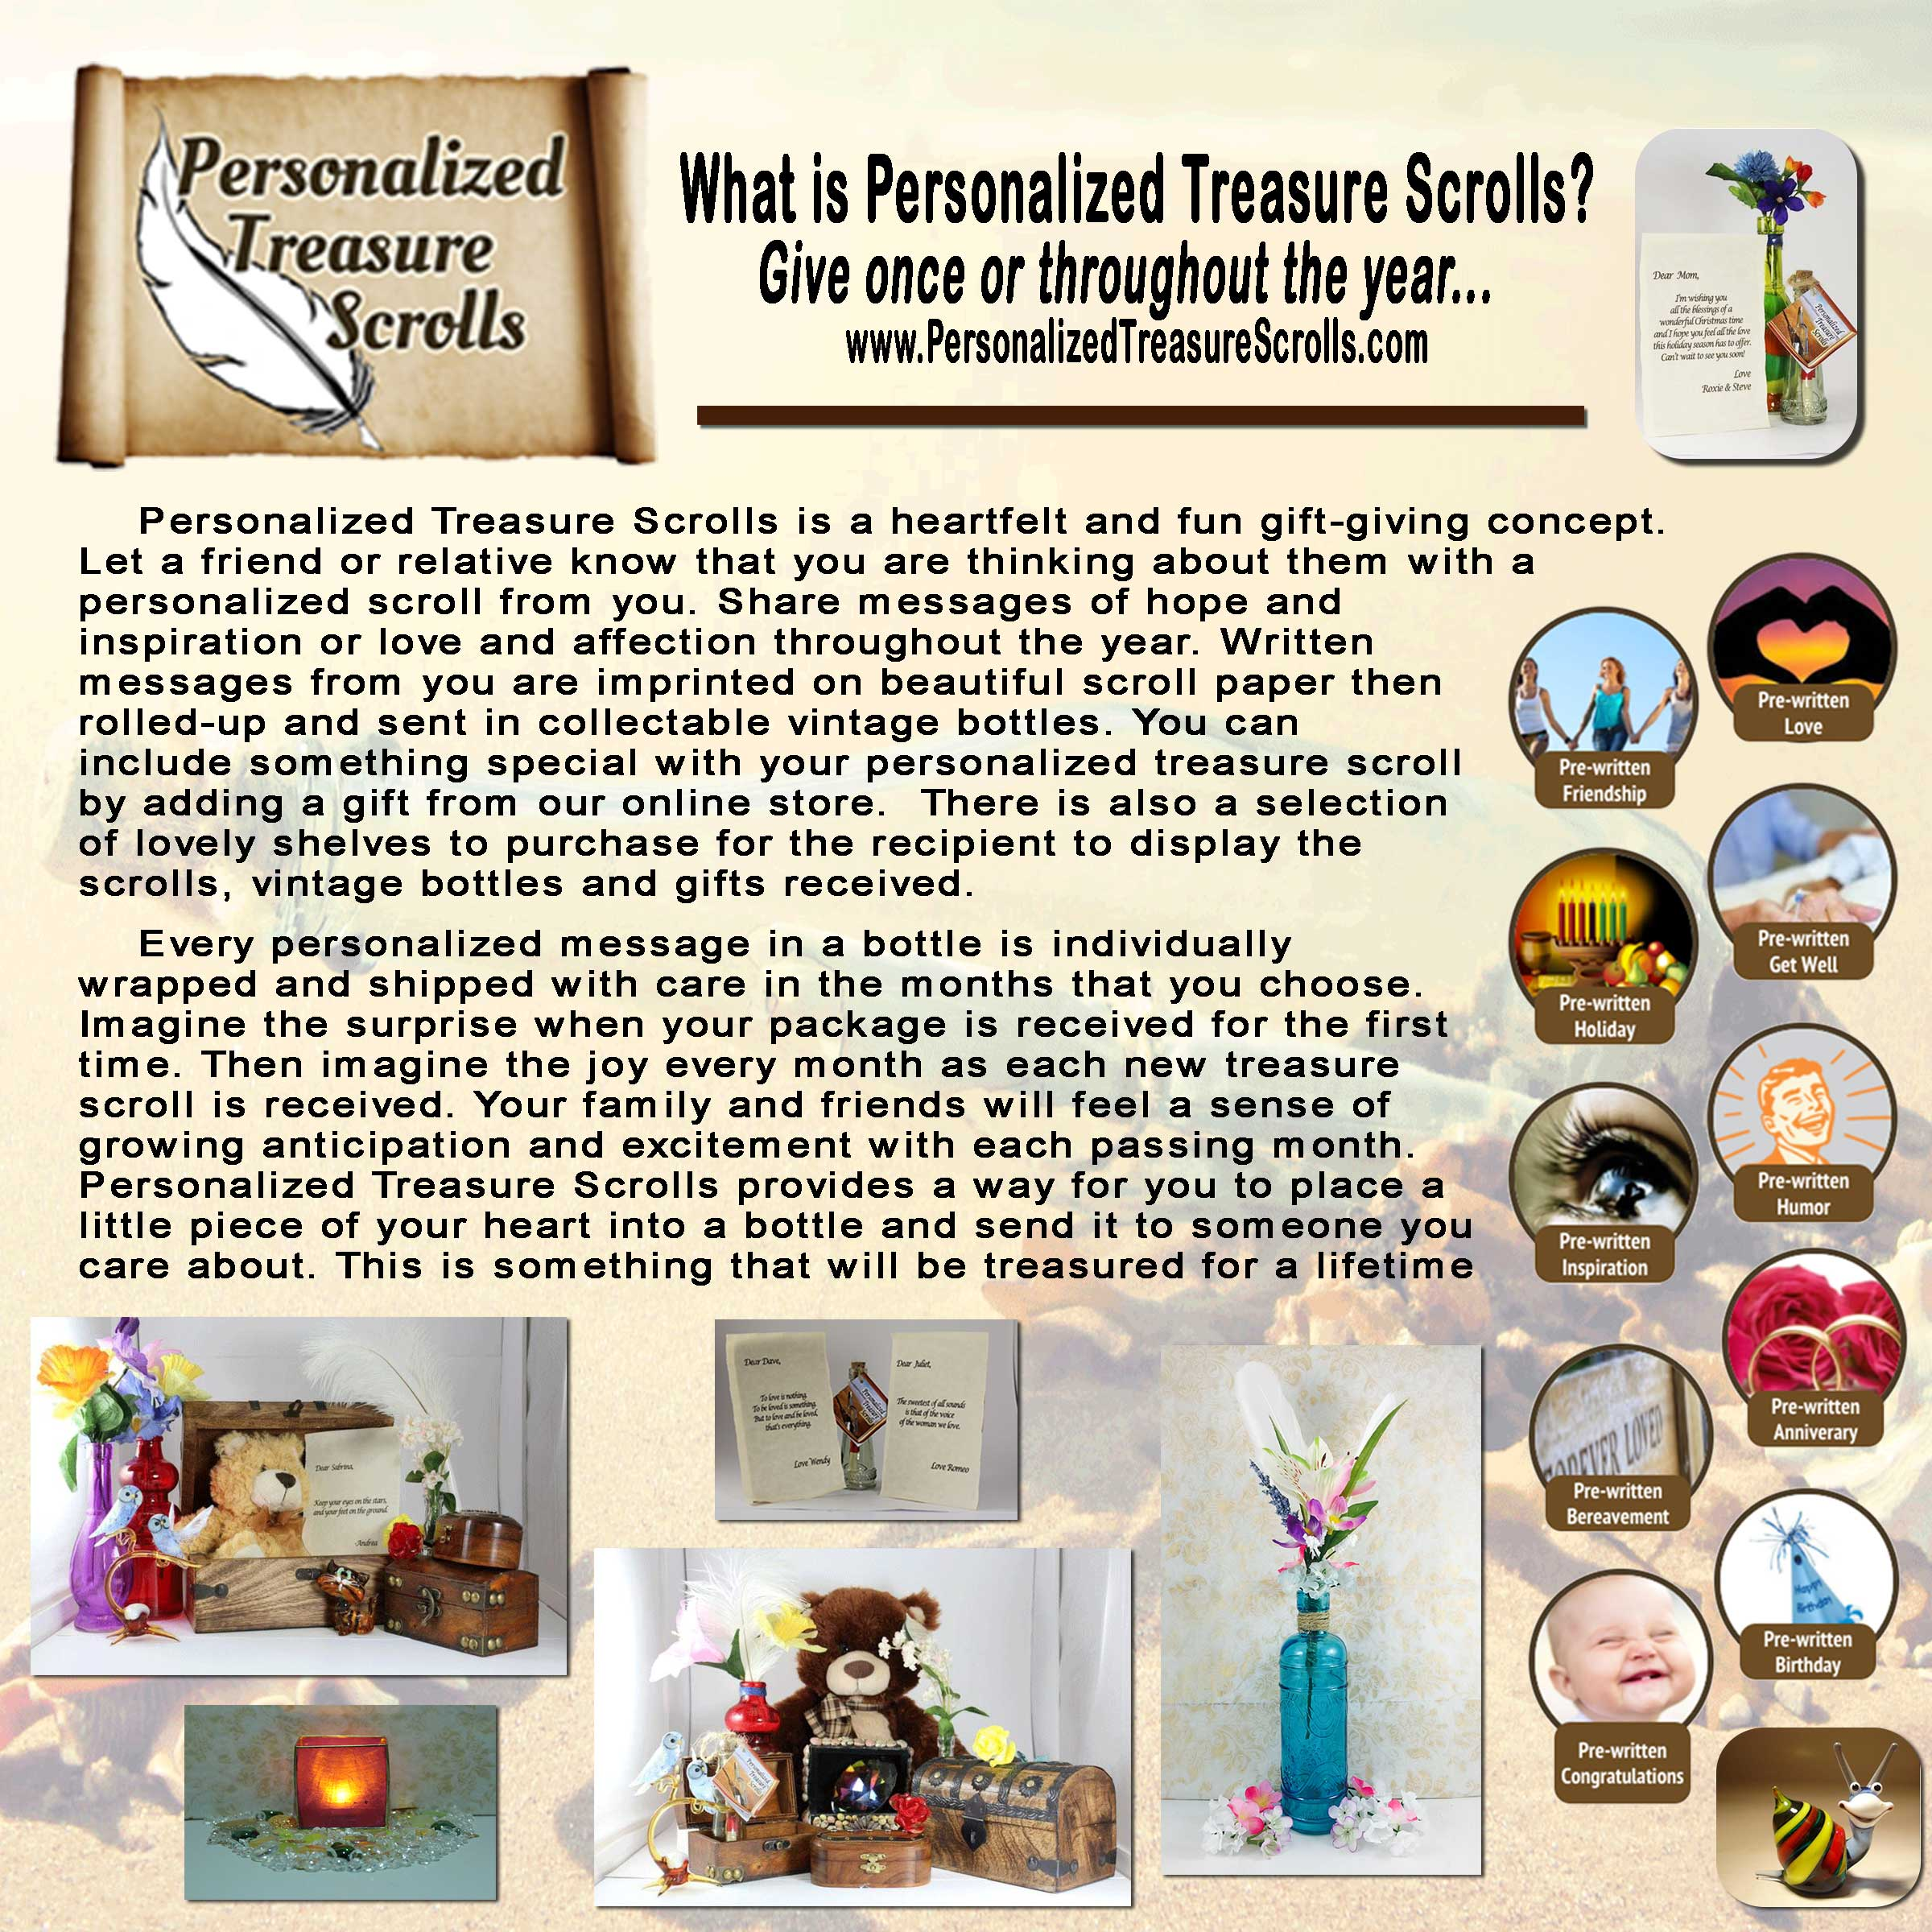 about personalized treasure scrolls